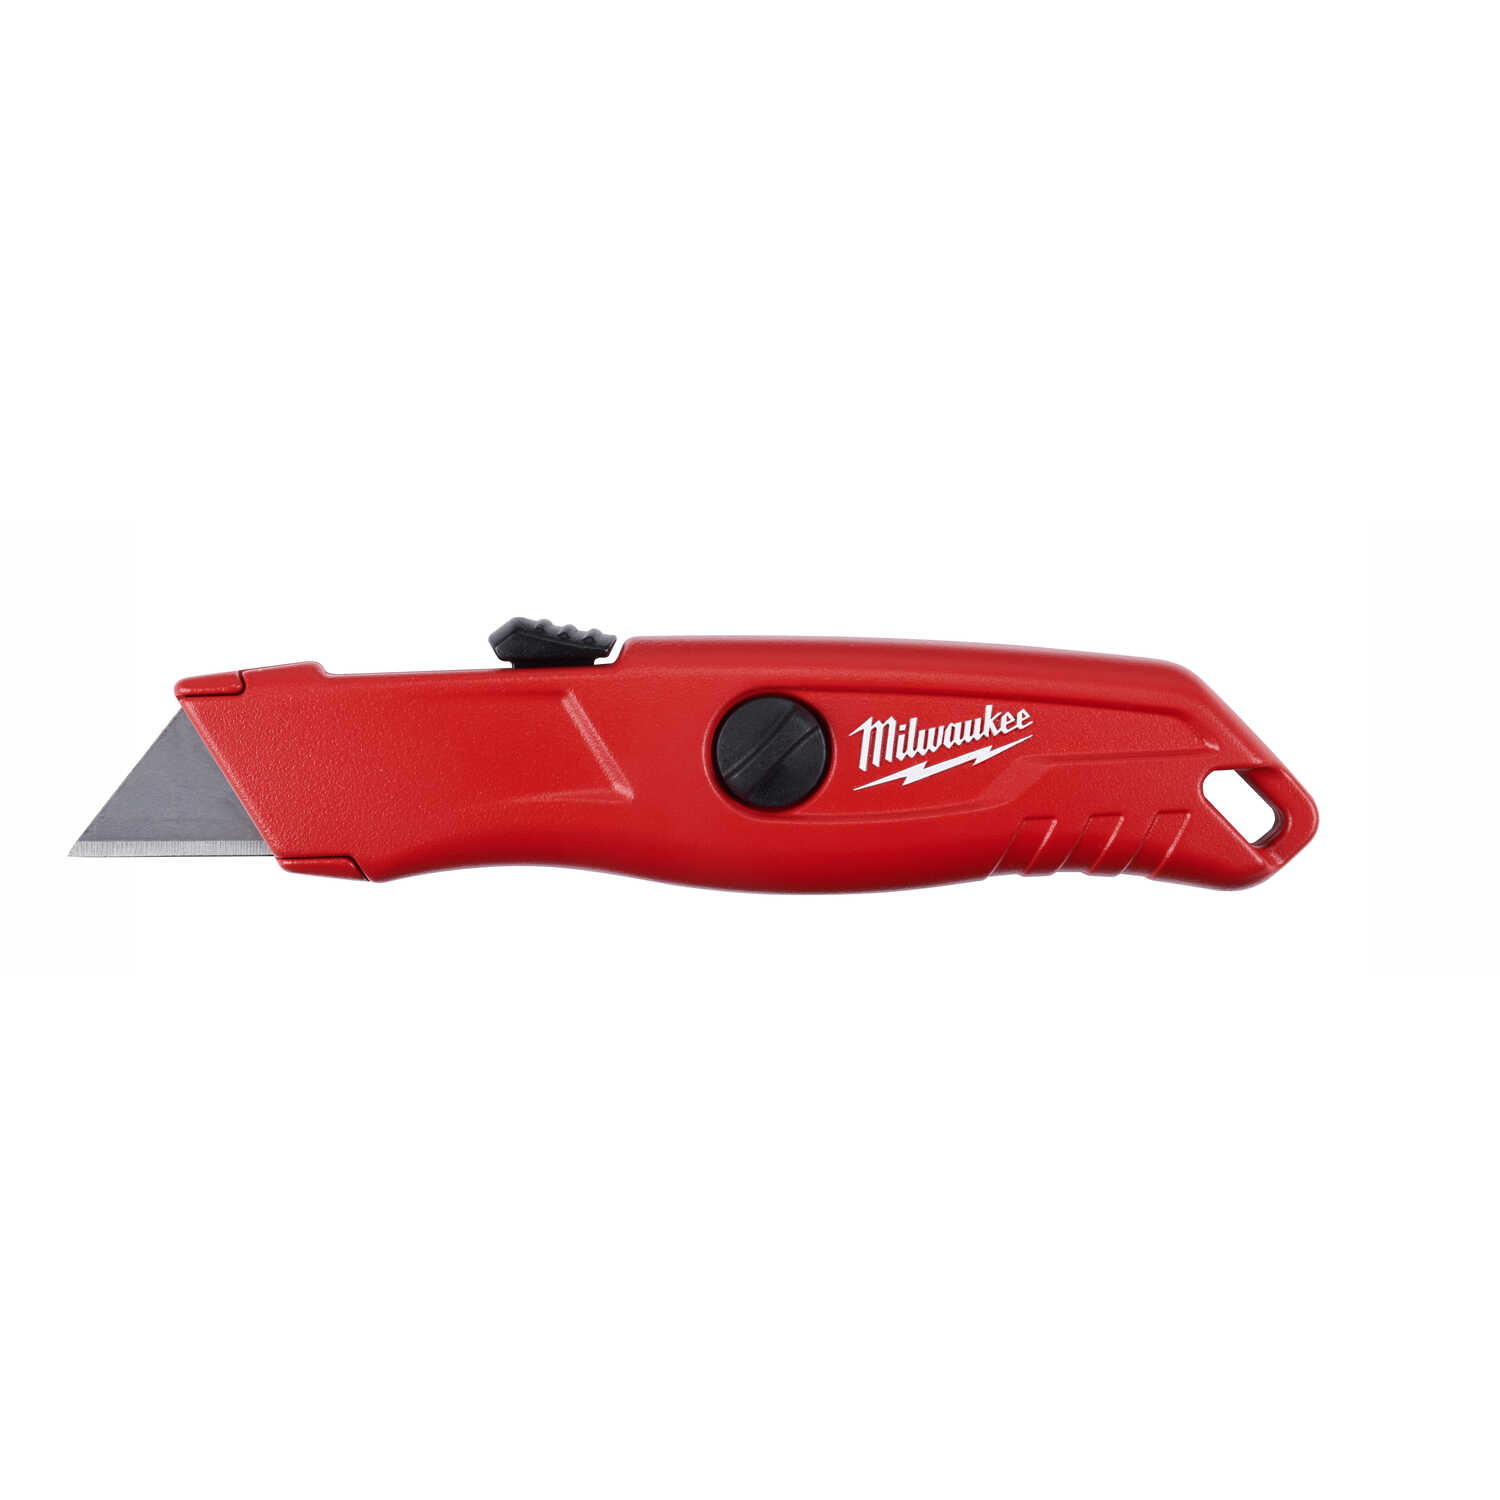 Milwaukee  5-3/4 in. Red  1 pk Safety Knife  Self-Retracting